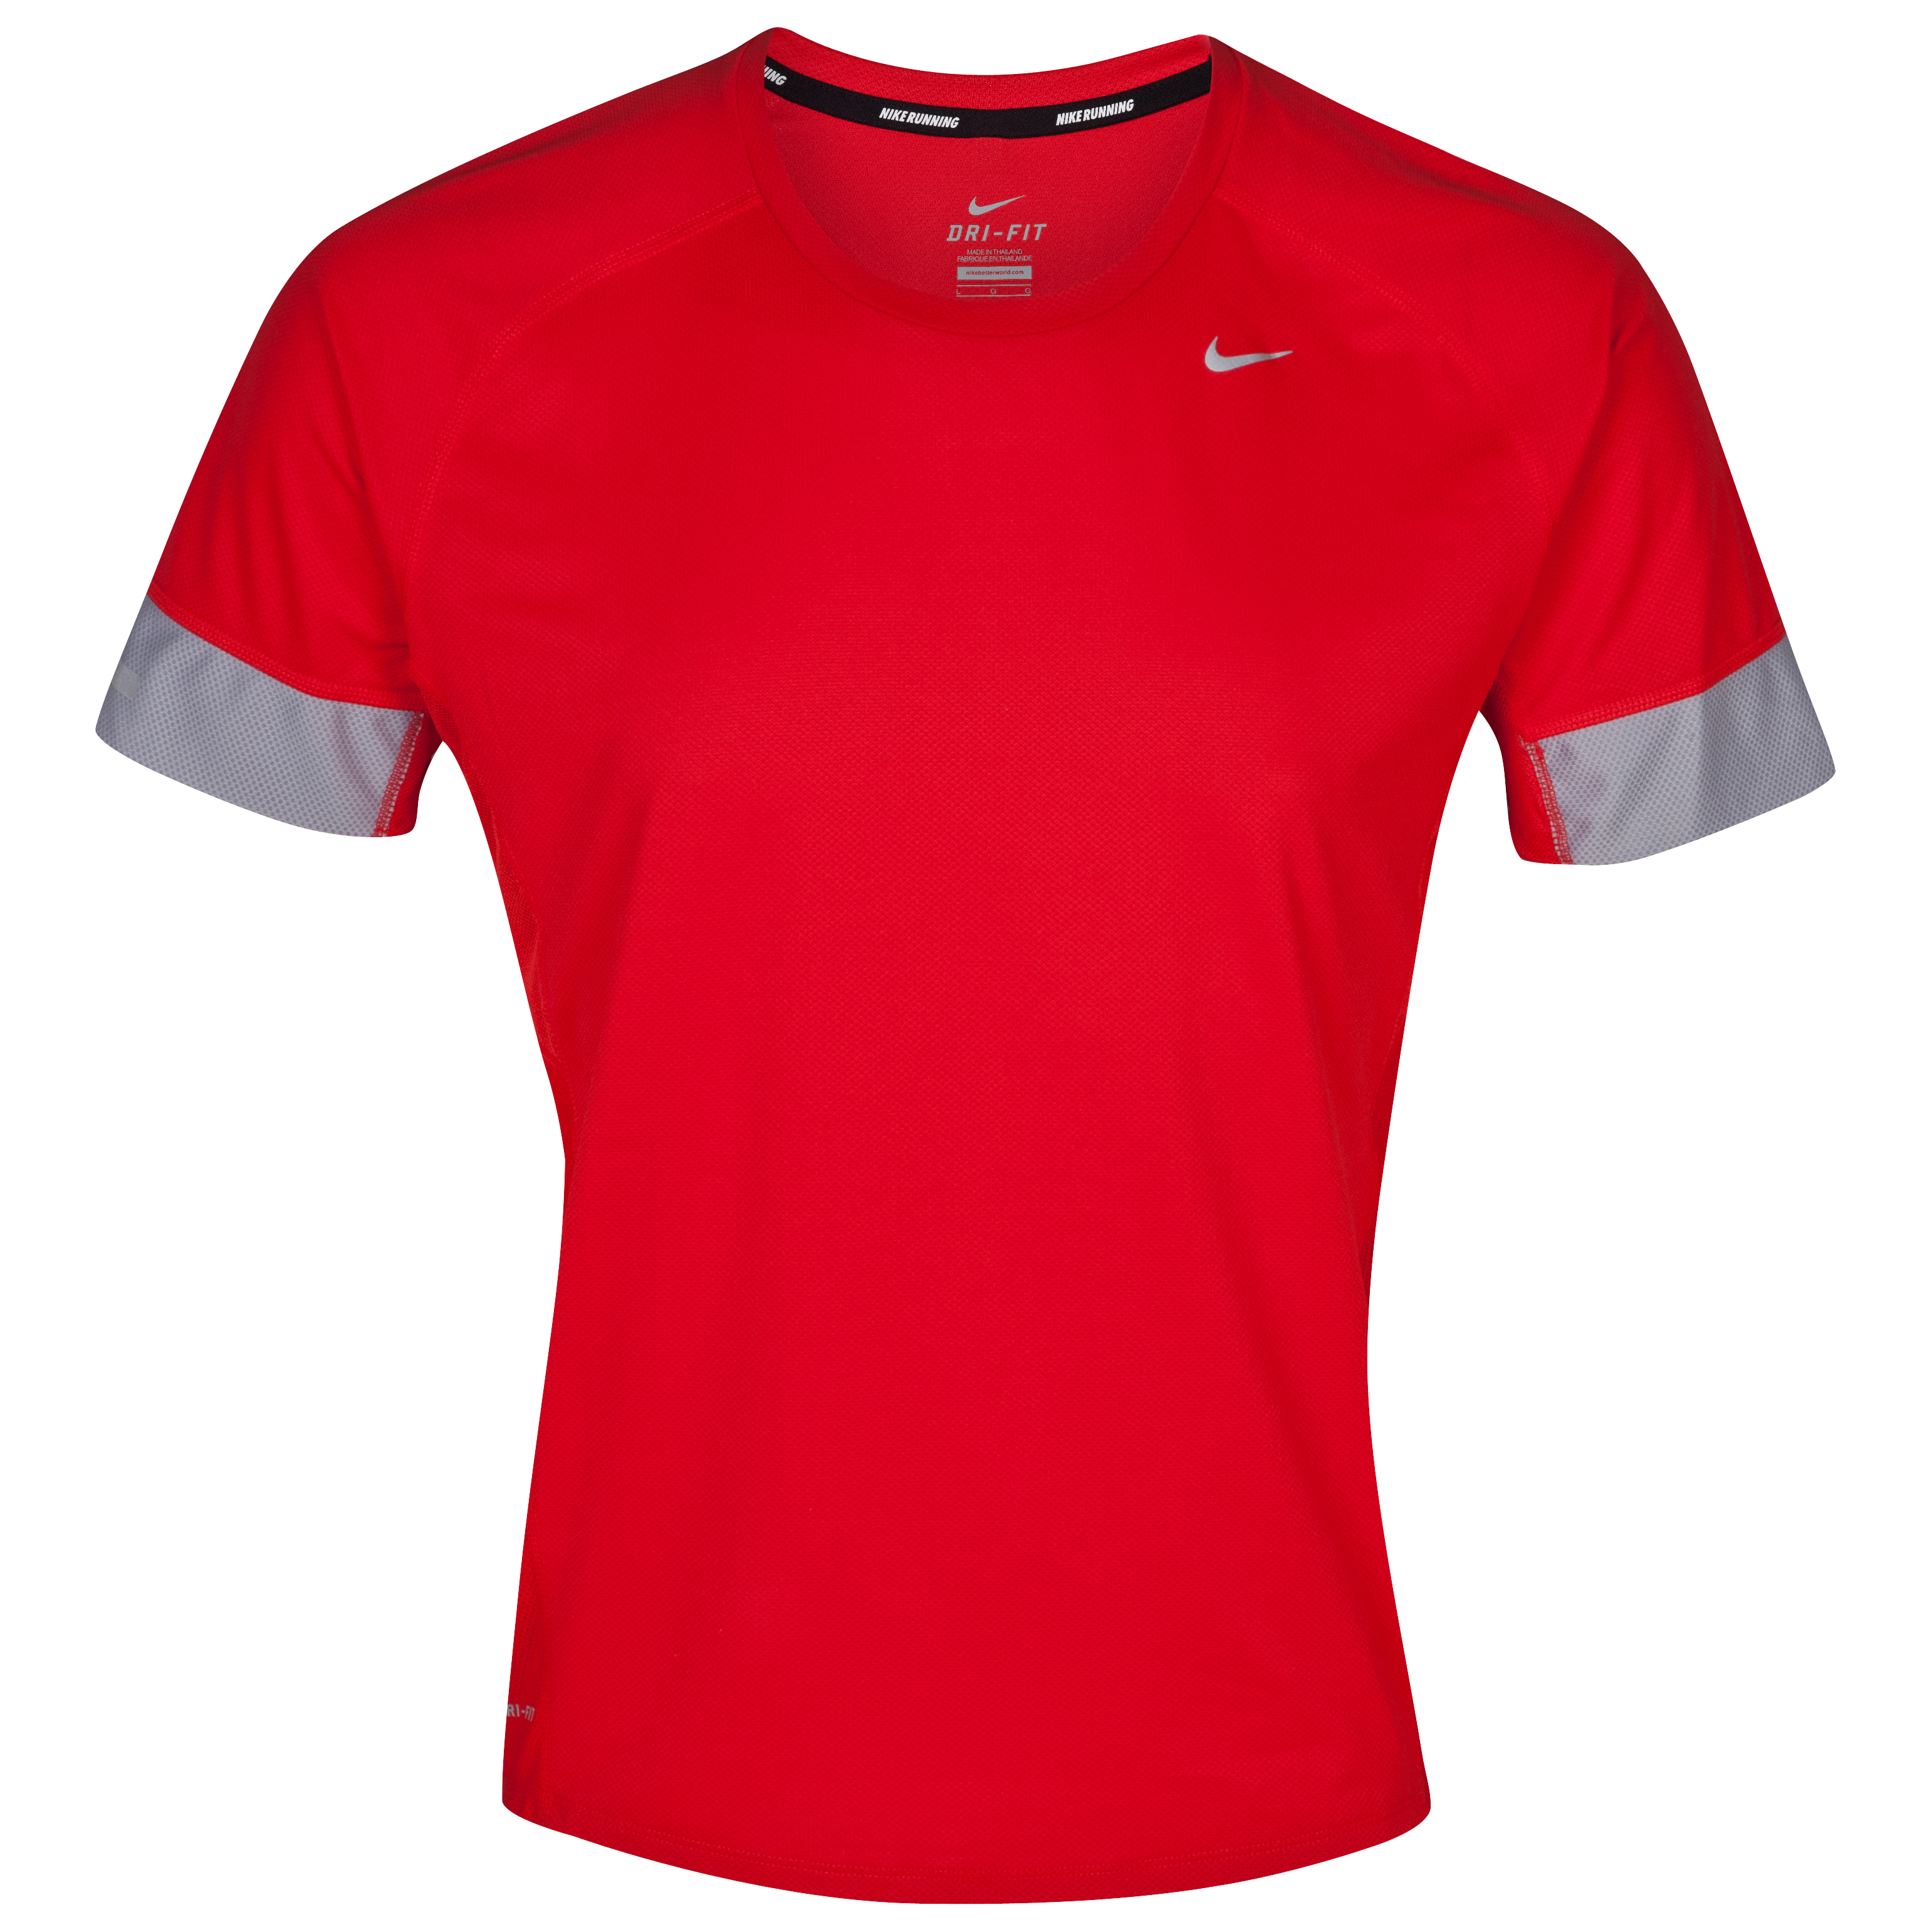 Nike Sphere SS T-Shirt - Pimento Red/Stadium Grey